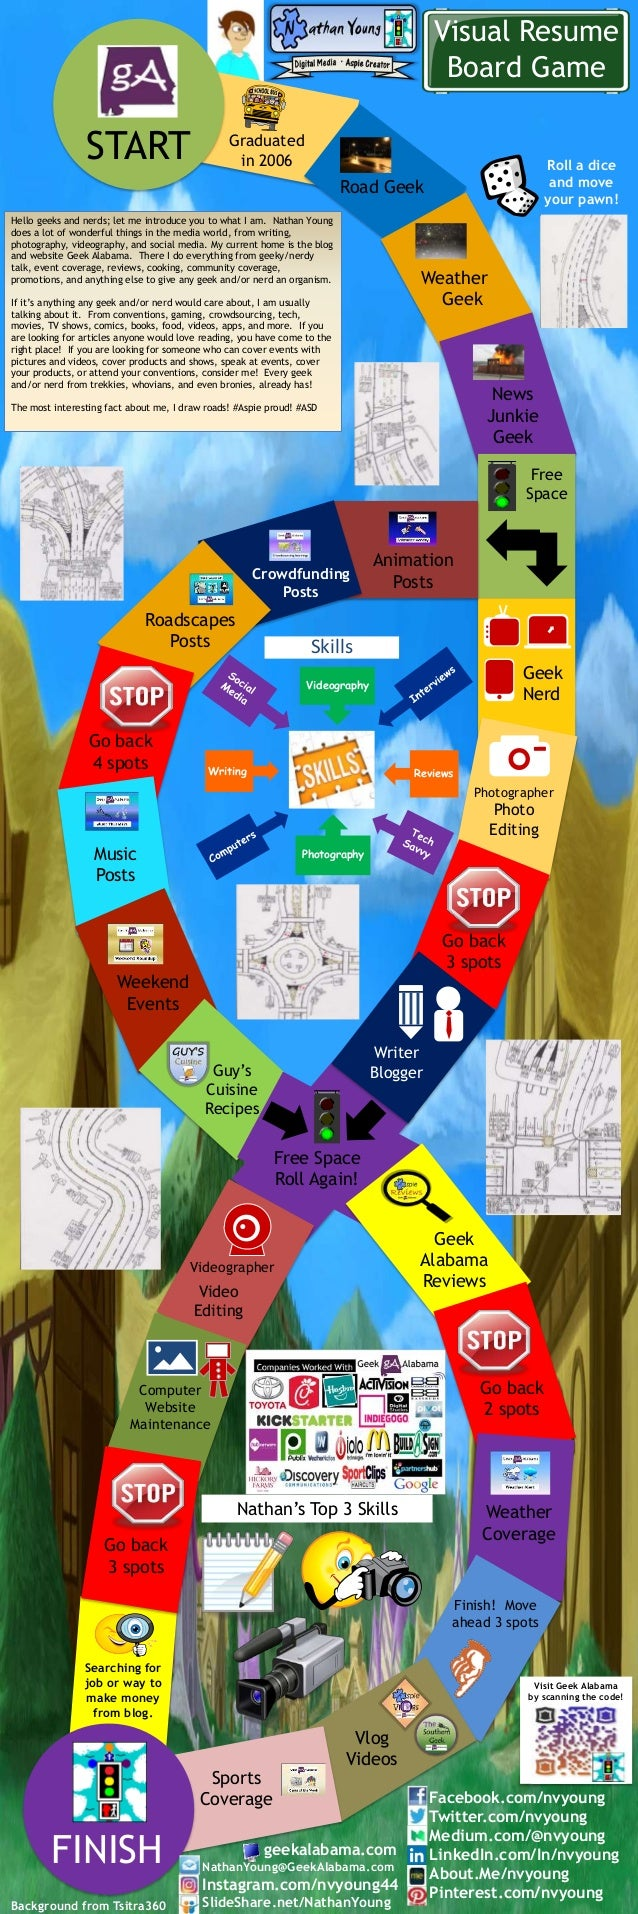 Nathan Young Visual Resume Board Game Infographic